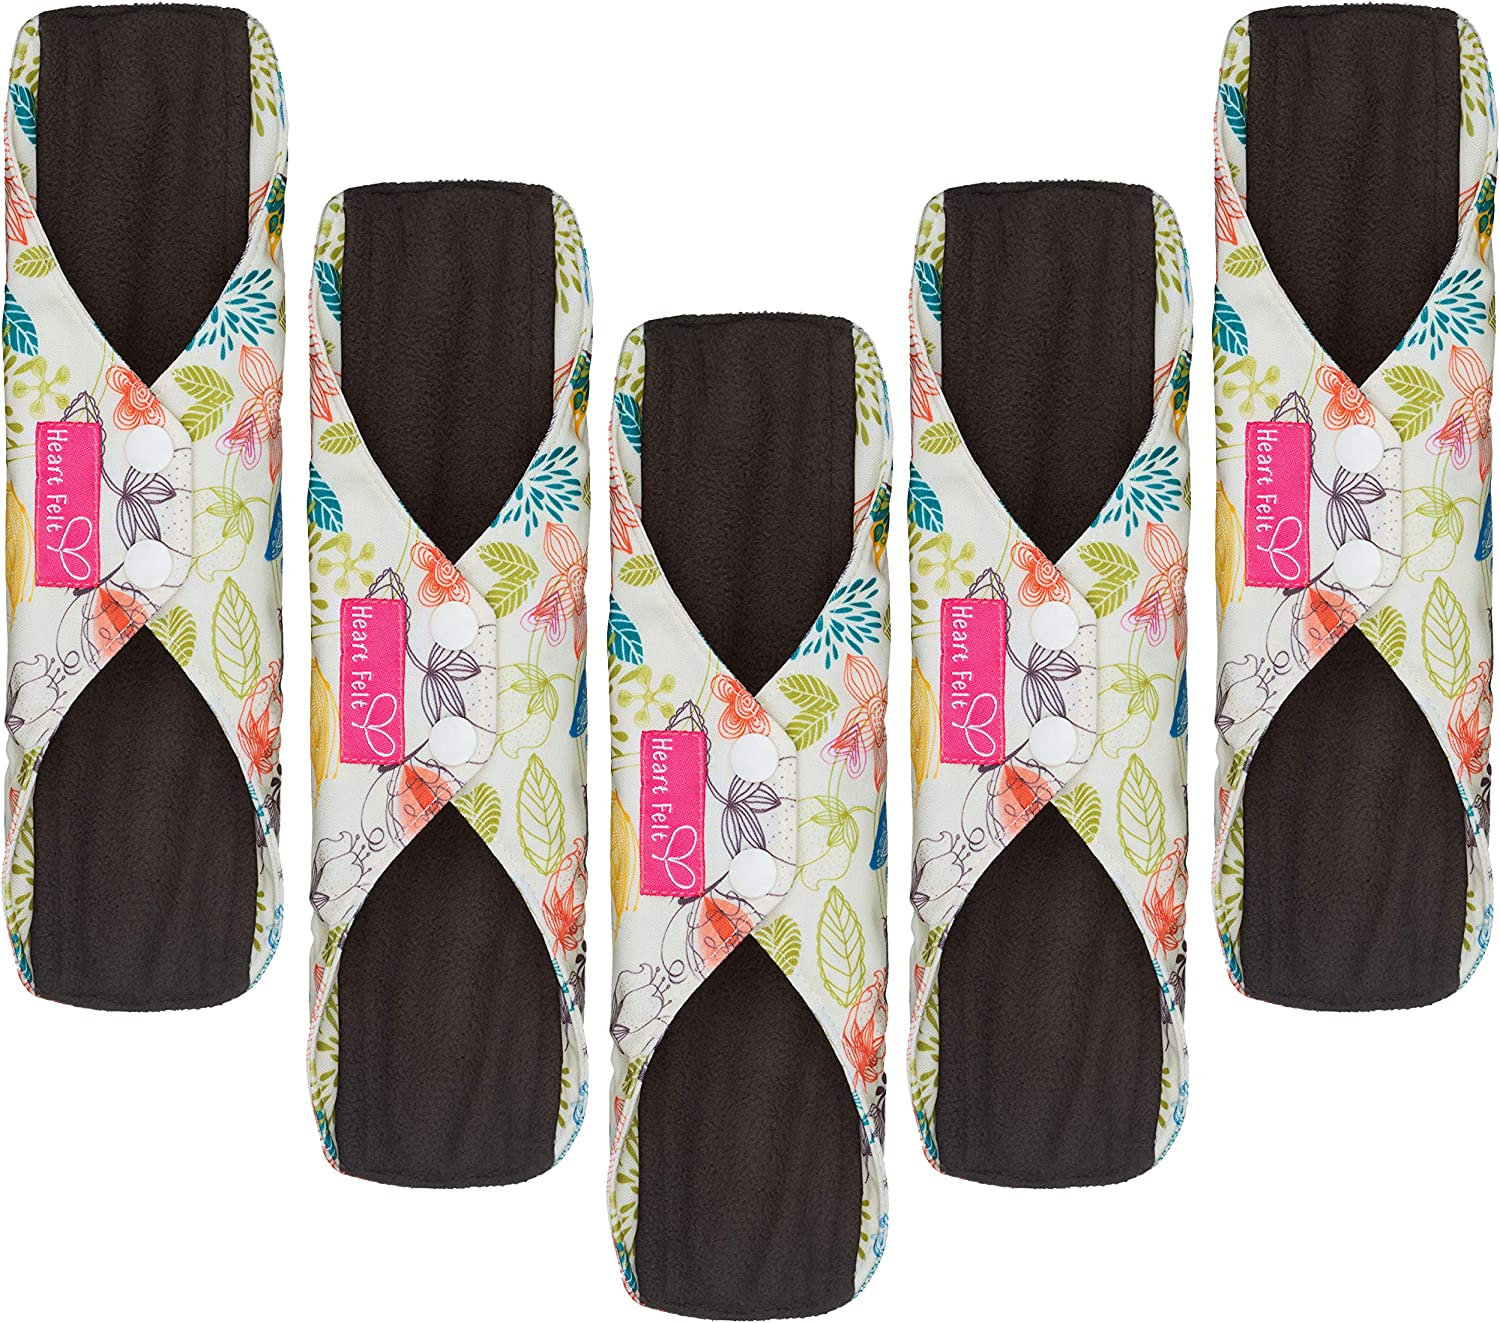 Yuehuam Washable Sanitary Towel Cloth Enstrual Pads 1PC Washable 4Layers Bamboo Charcoal Cloth Nappr Liner Reusable Diaper Insert Pad